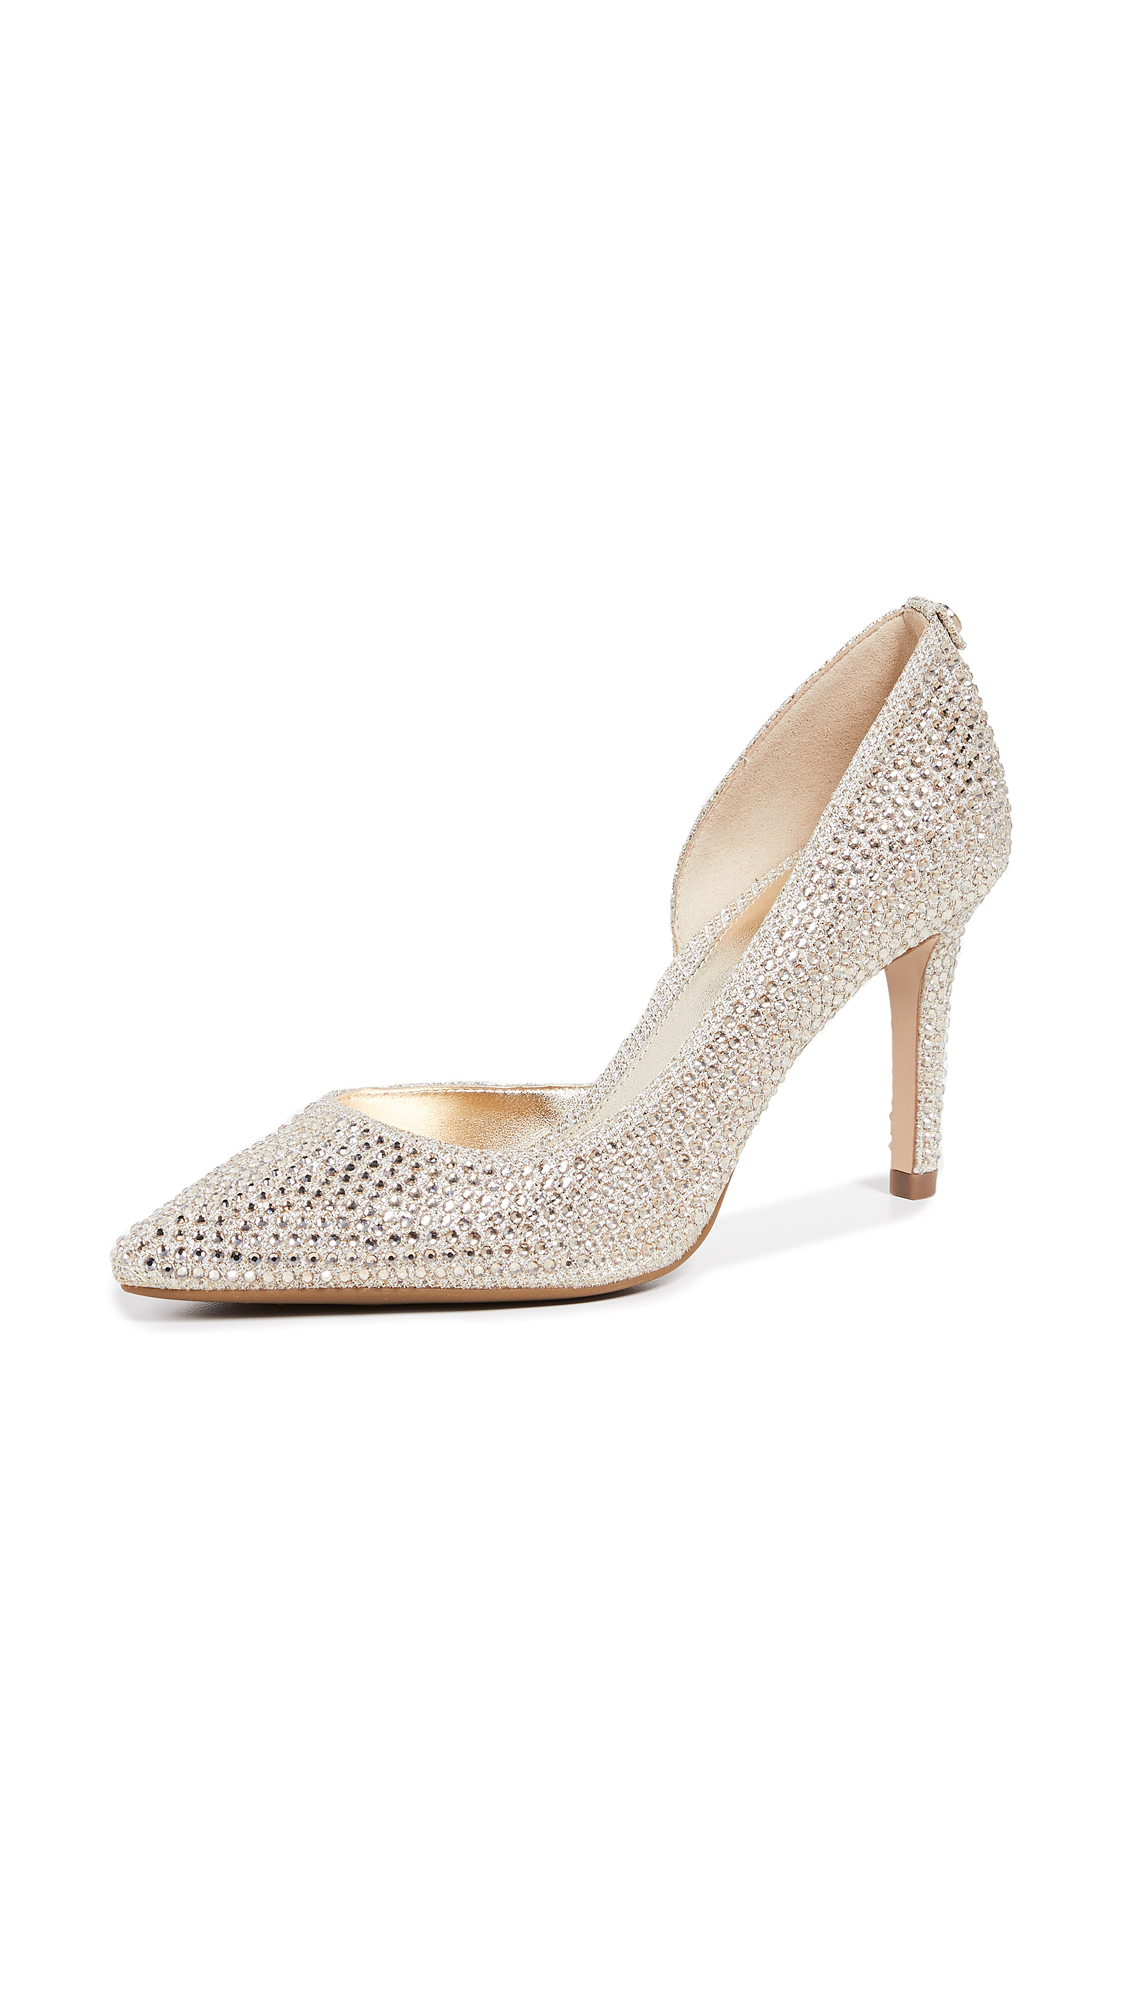 MICHAEL Michael Kors Dorothy Flex Dorsay Pumps - White/Gold